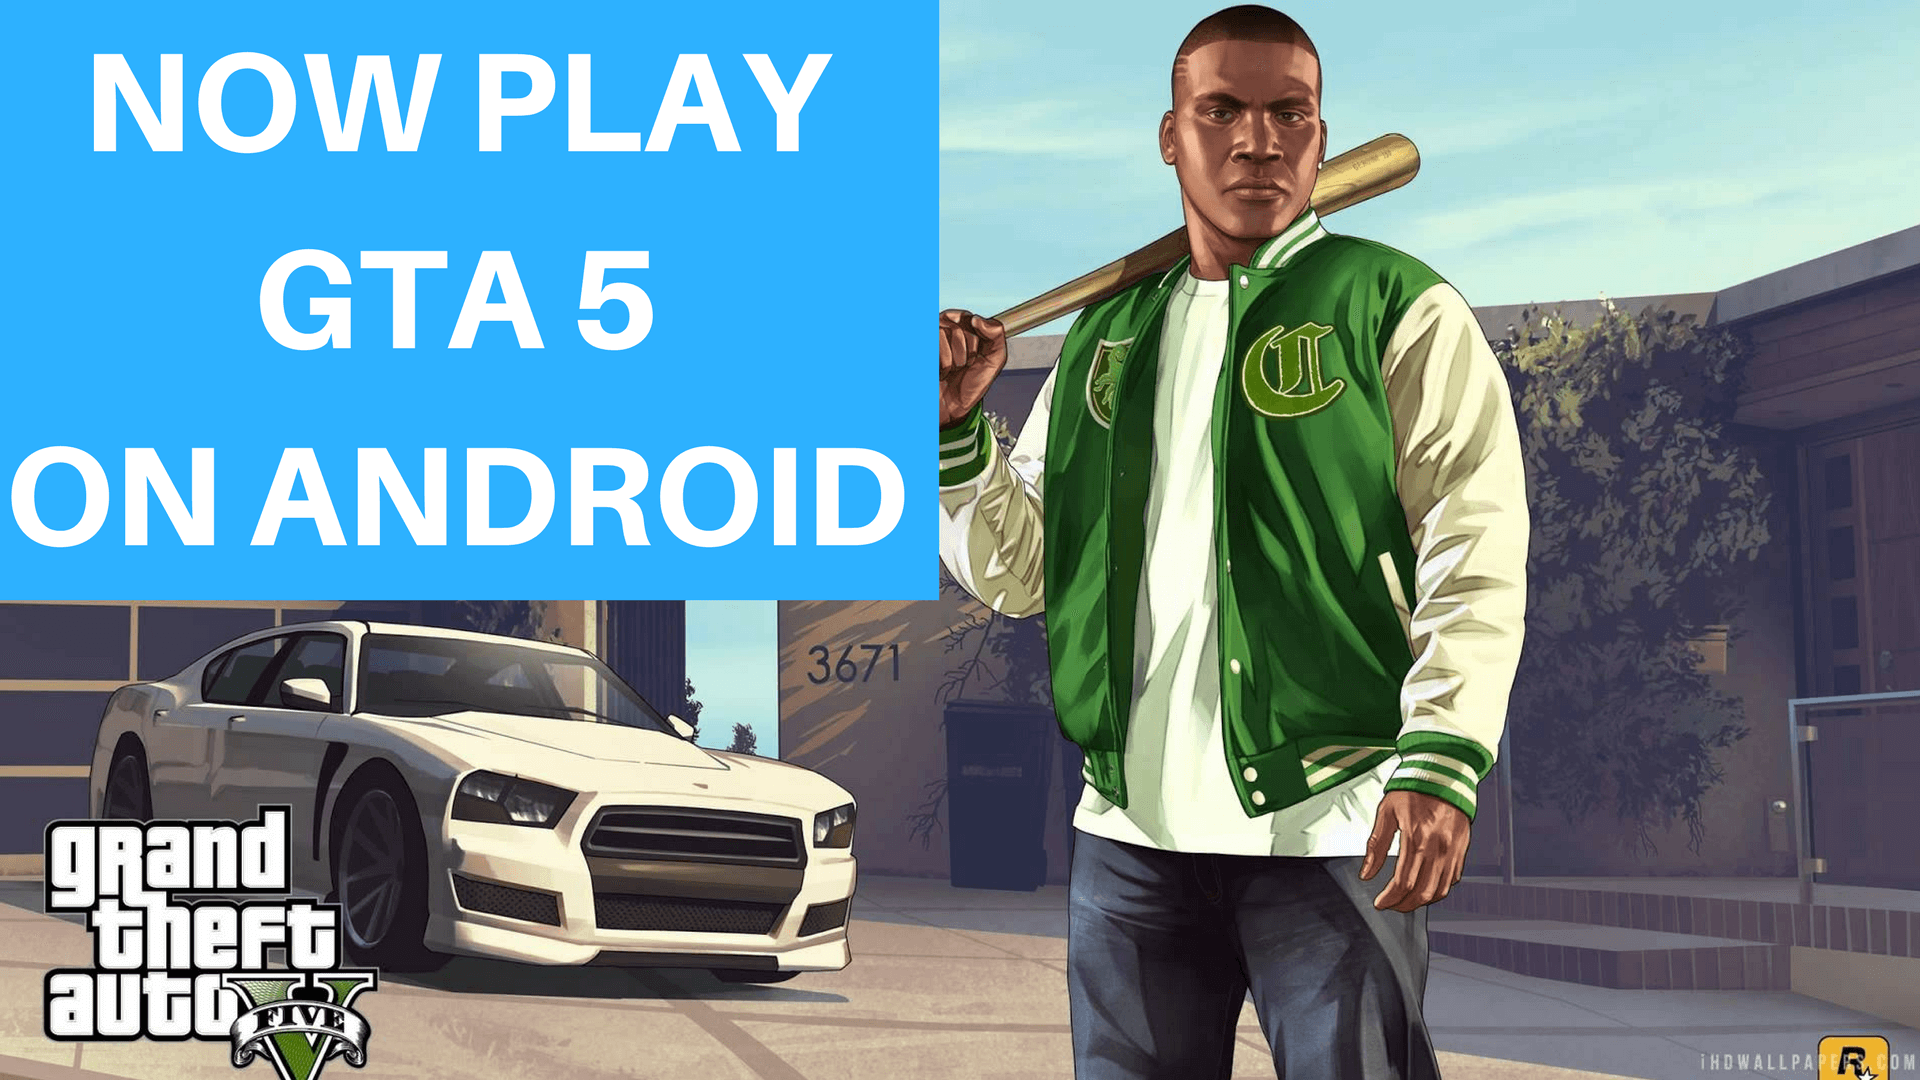 NOW PLAY GTA 5 ON ANDROID